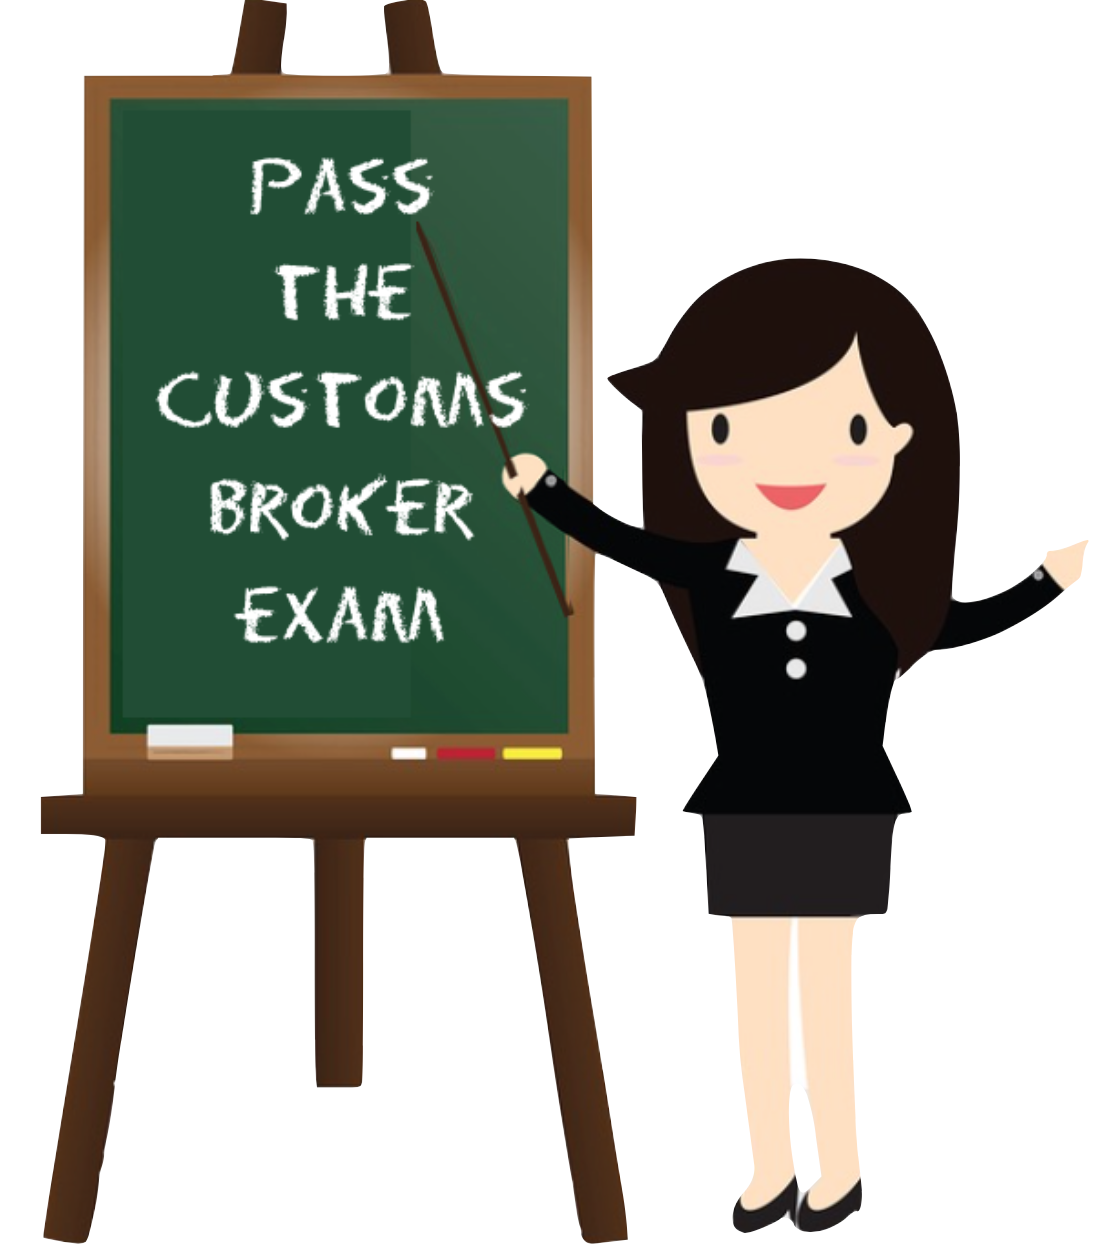 /jumppageimages/pass_the_customs_broker_exam.png